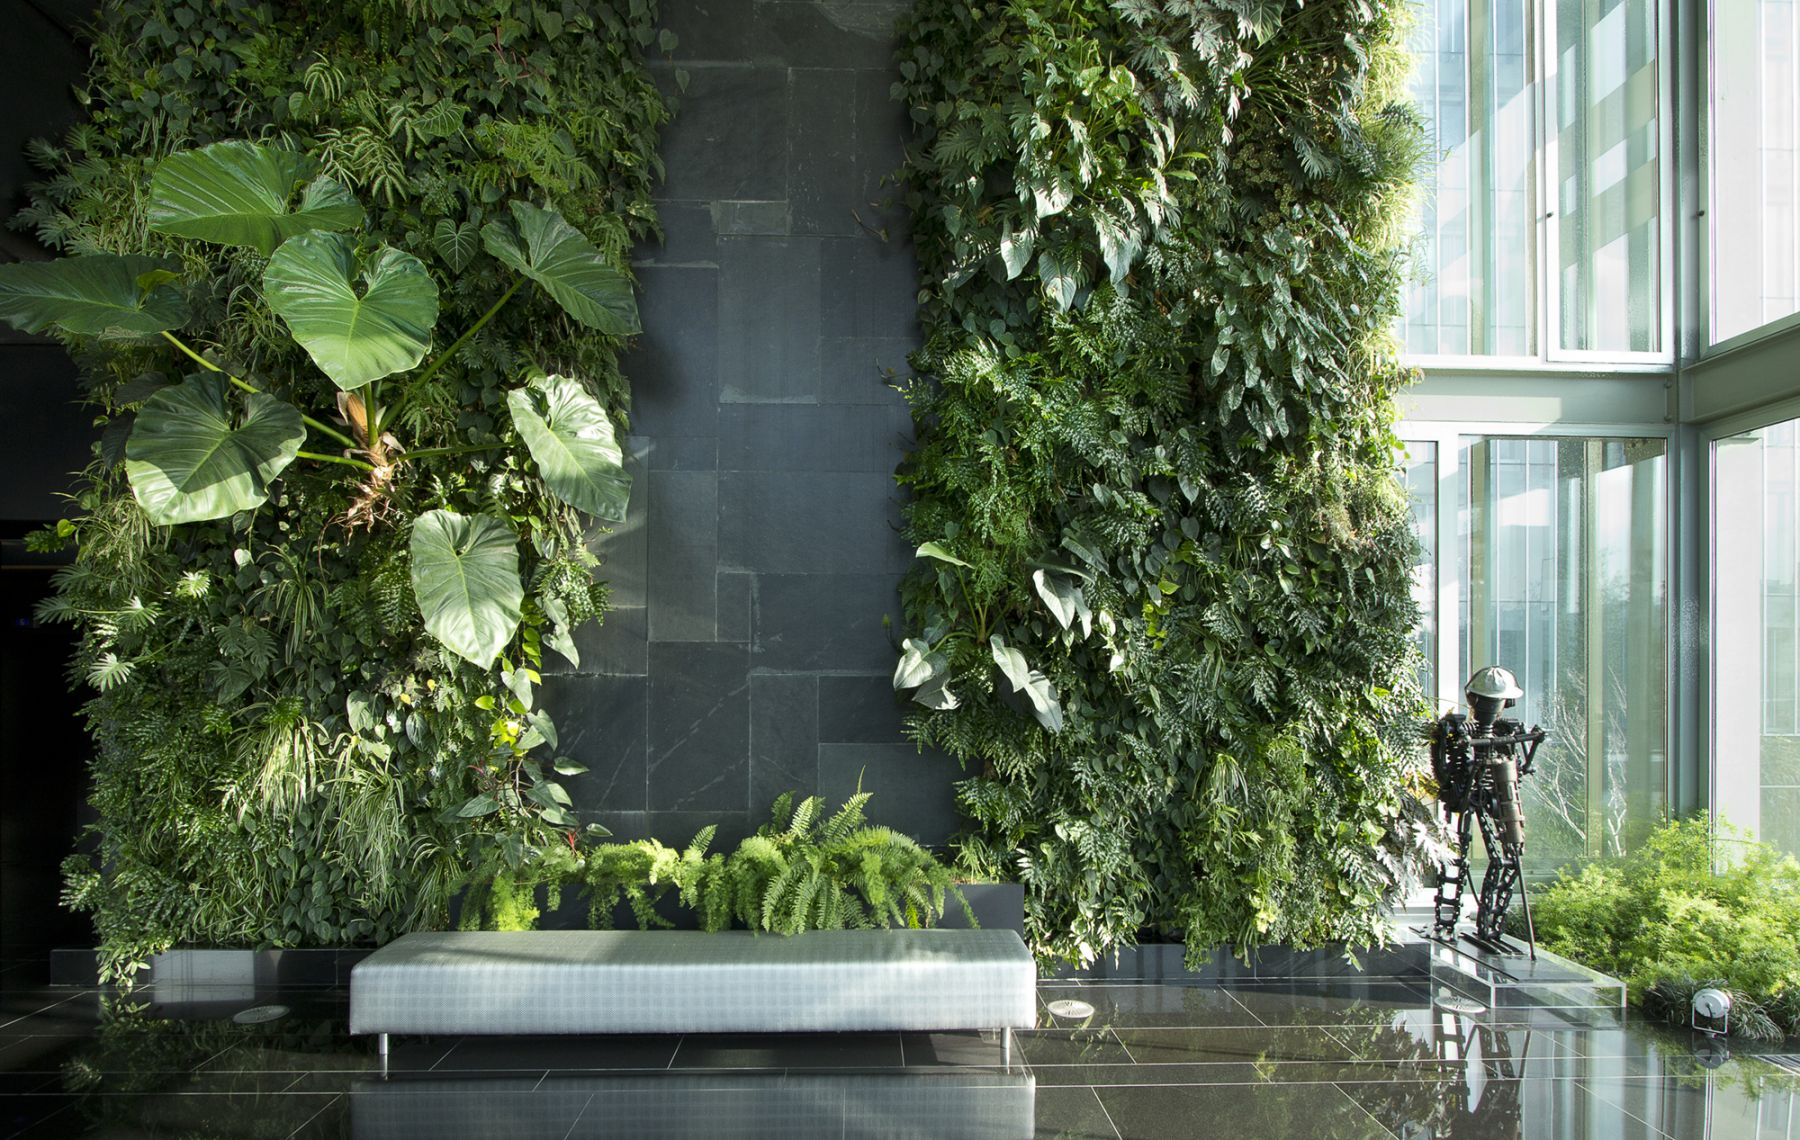 Natura-Towers_Interior_Vertical-Garden-Design_Jardim-vertical_Lisboa_Portugal_1.jpg